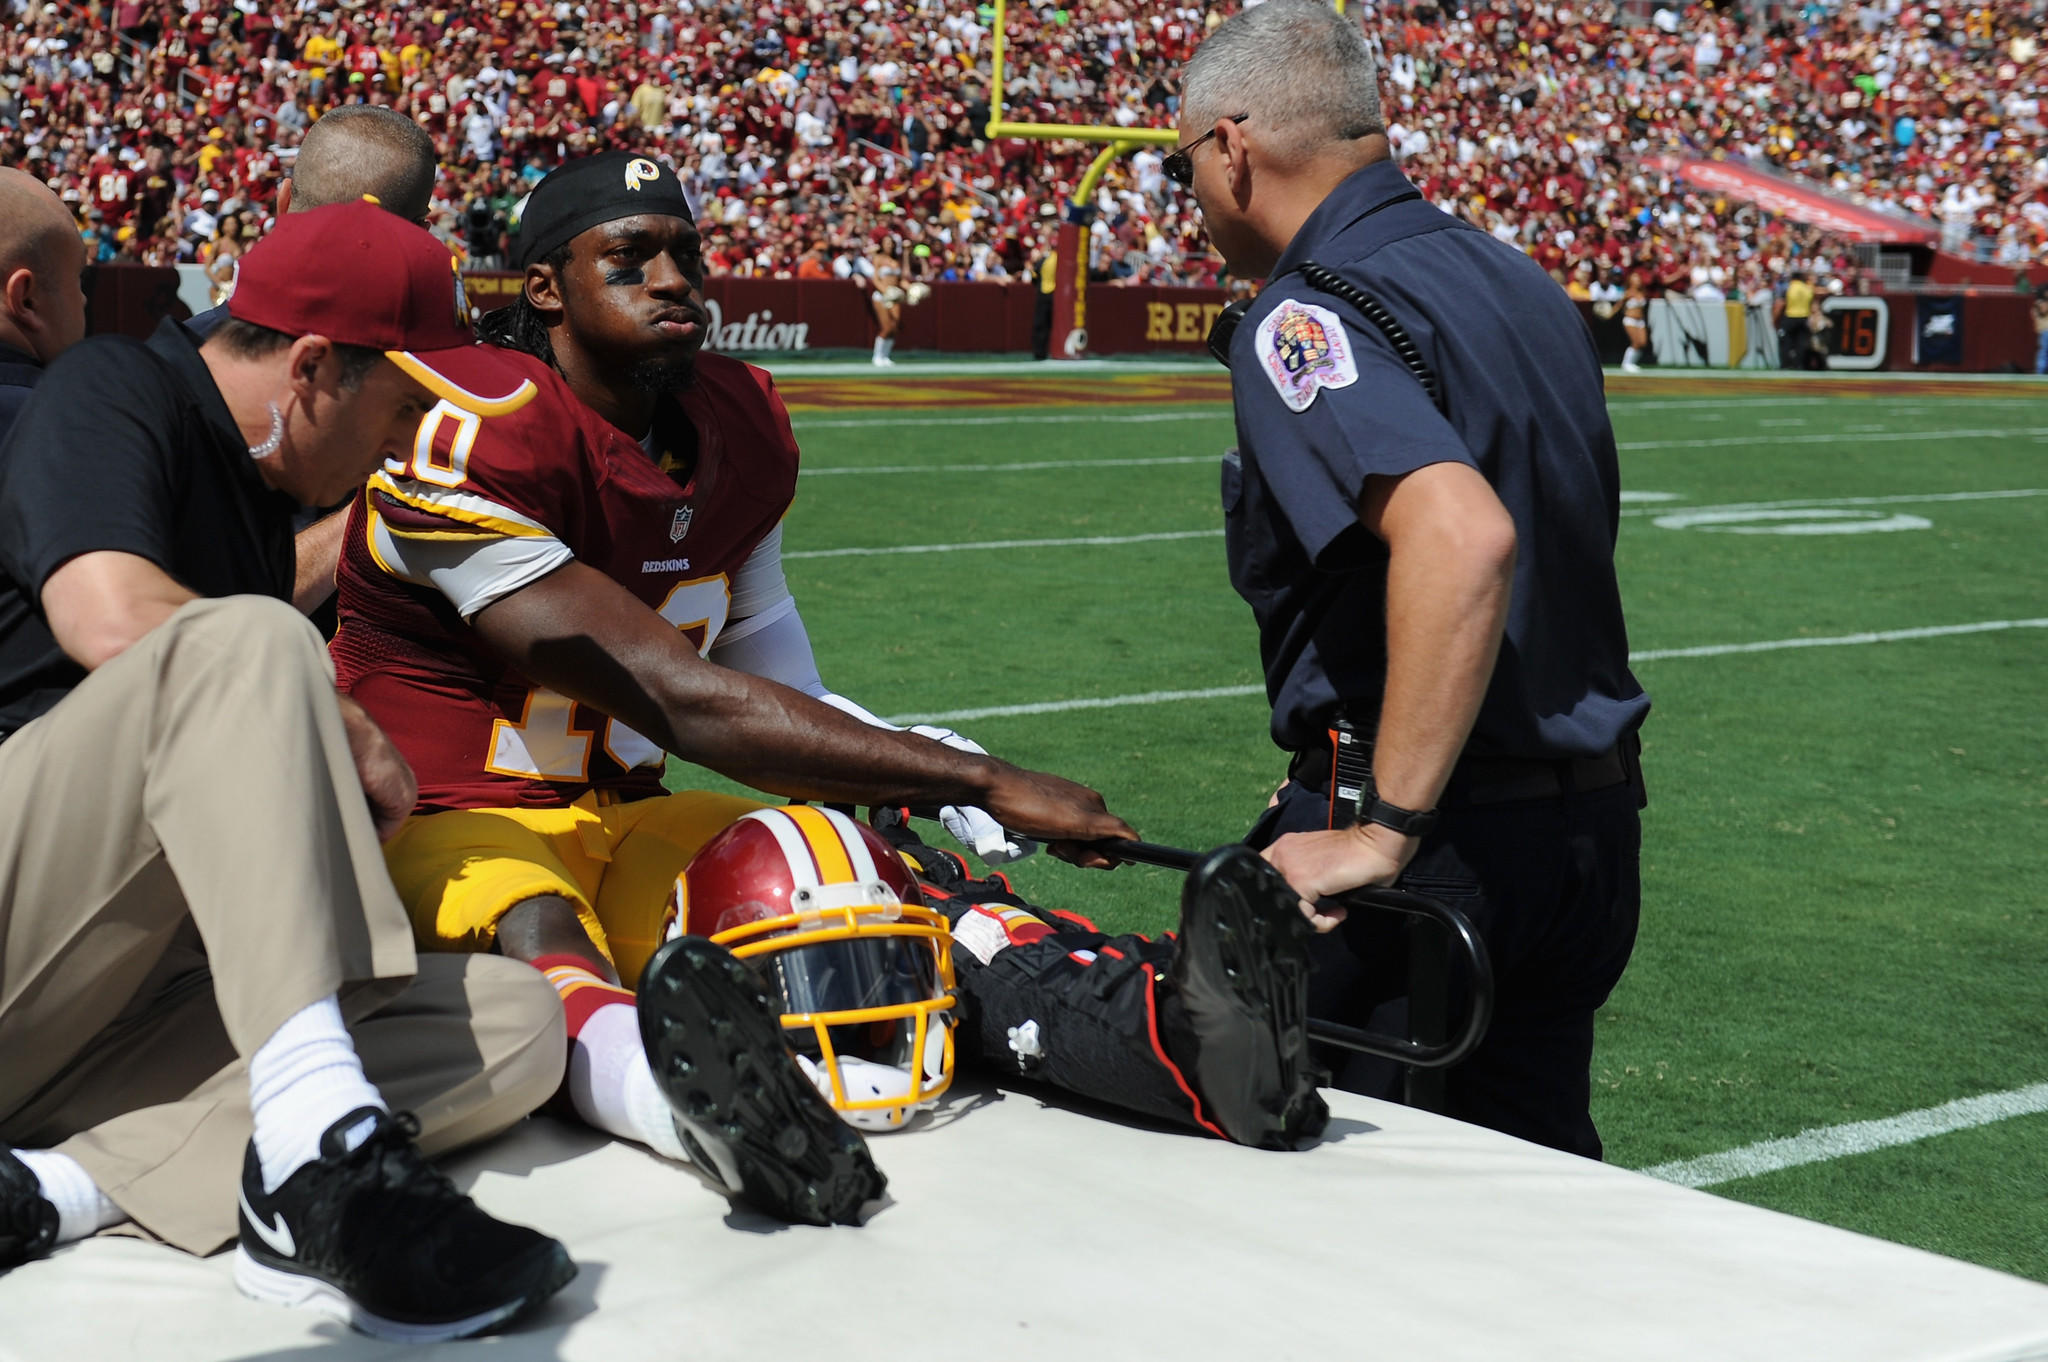 Quarterback Robert Griffin III #10 of the Washington Redskins is carted off the field after being injured during a game against the Jacksonville Jaguars at FedExField on September 14, 2014 in Landover, Maryland.